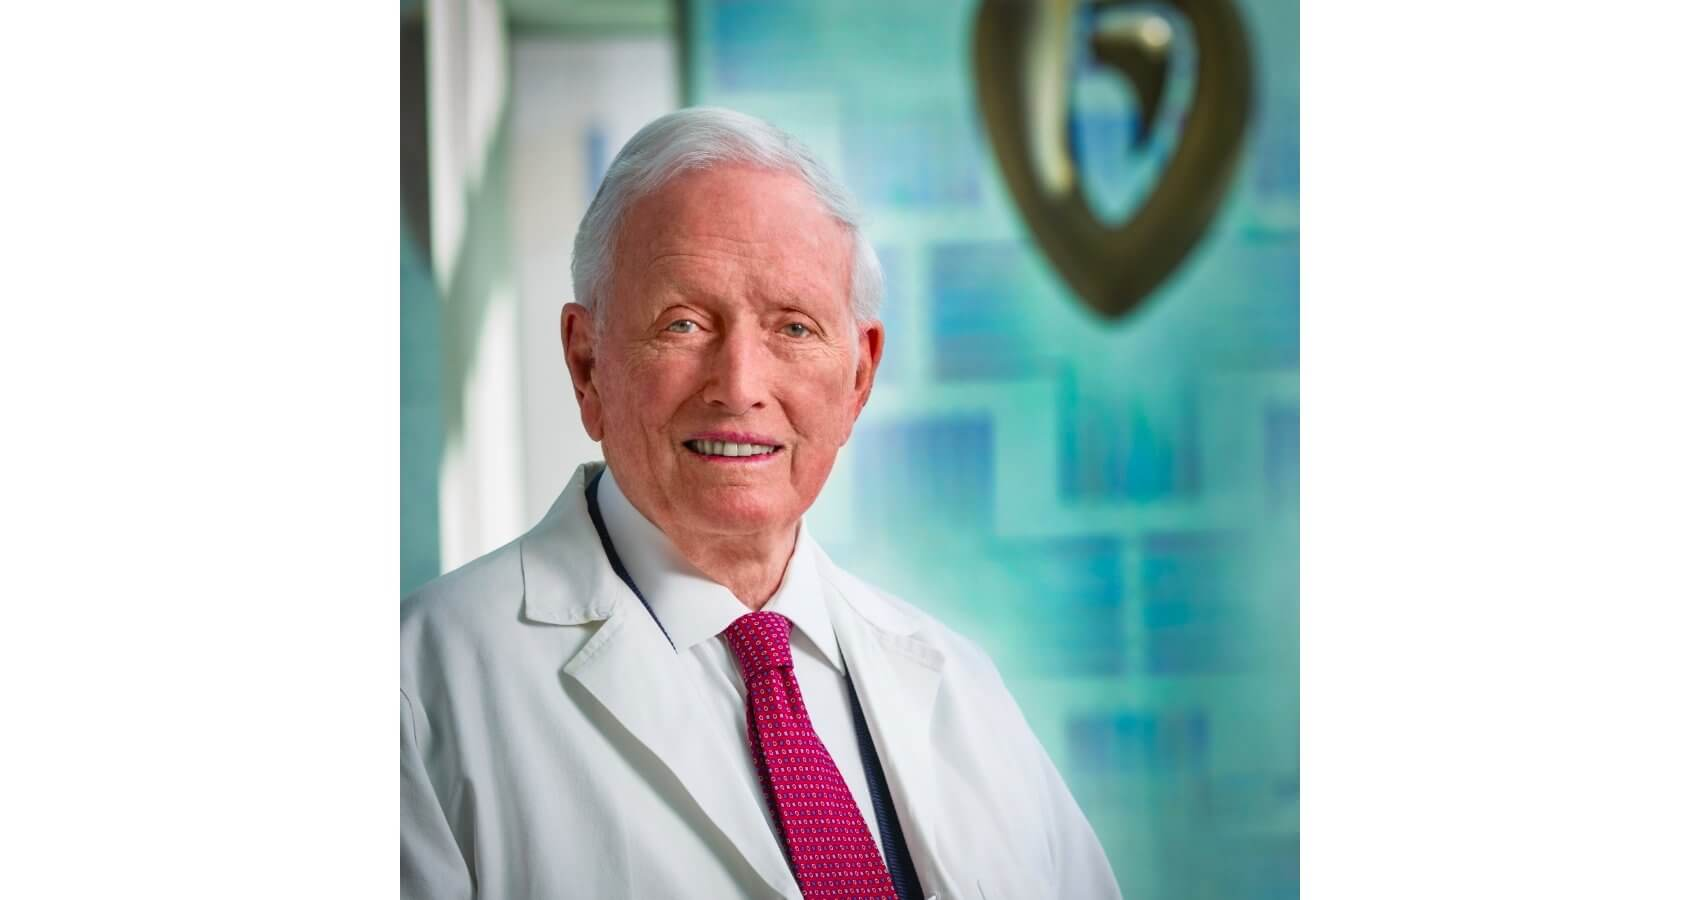 Denton A. Cooley, M.D. - the man and the vision behind the Texas Heart Institute